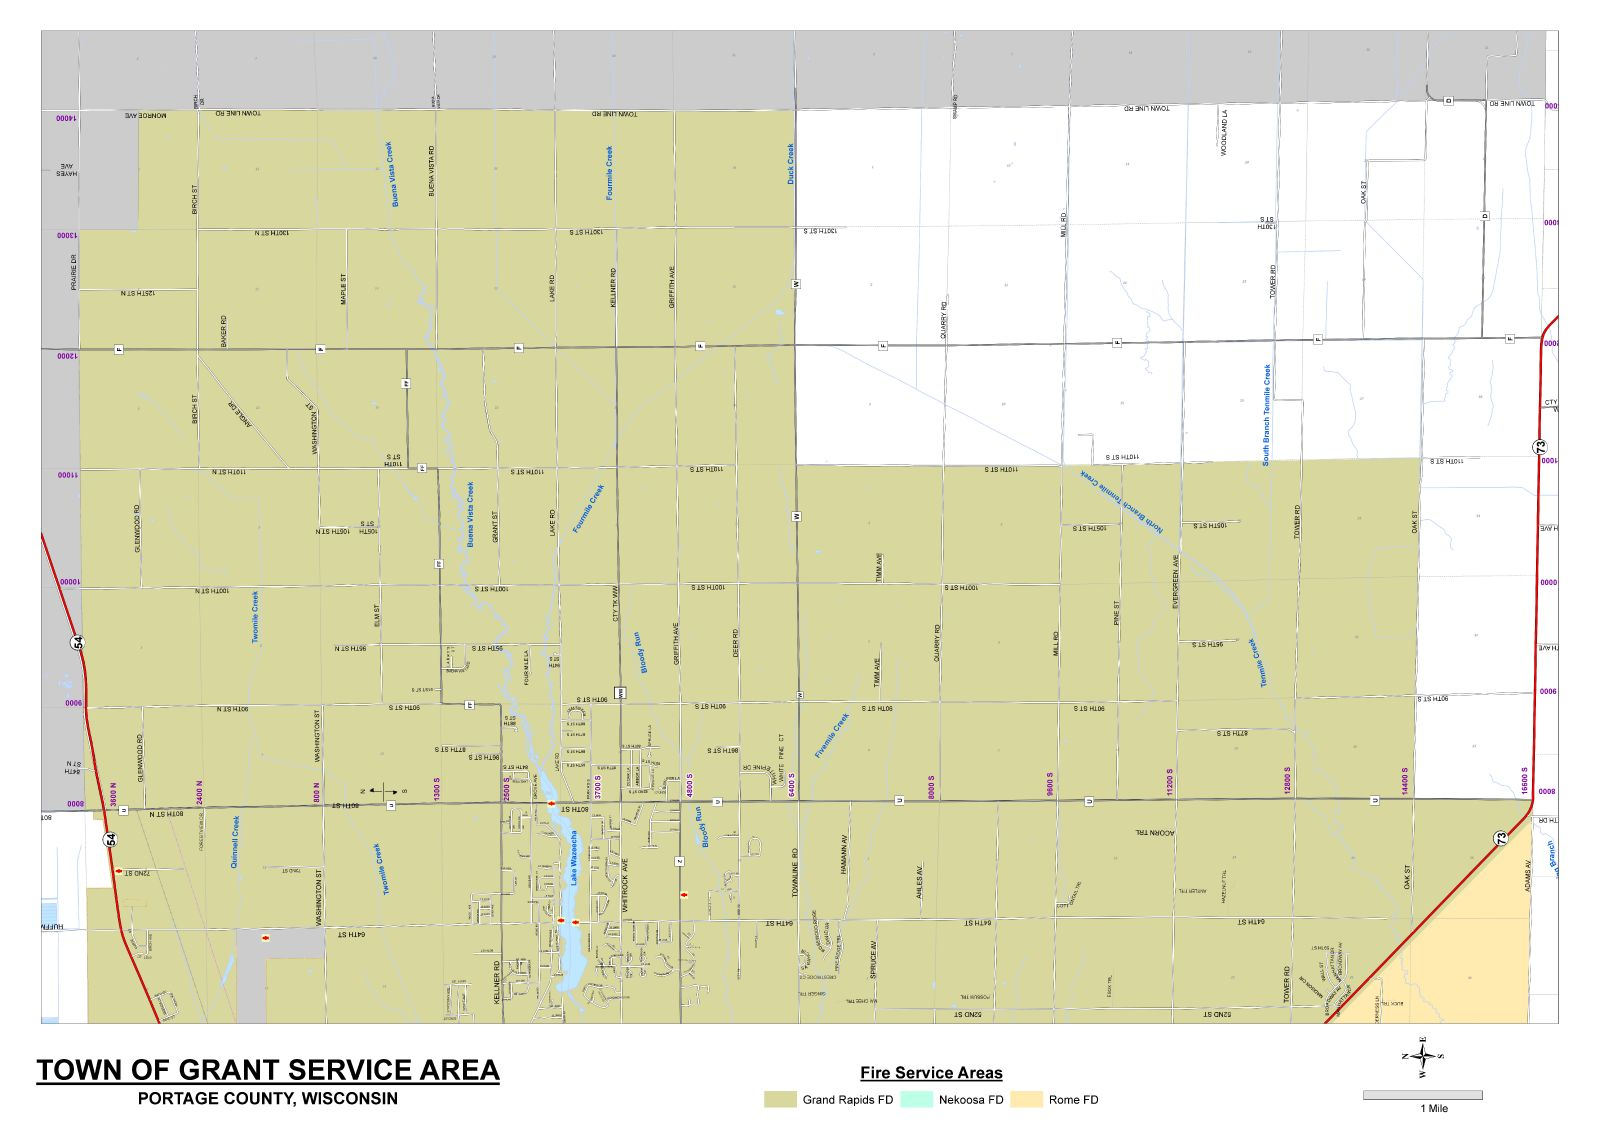 Grand Rapids Fire Departments coverage map for the Town of Grant, Portage County